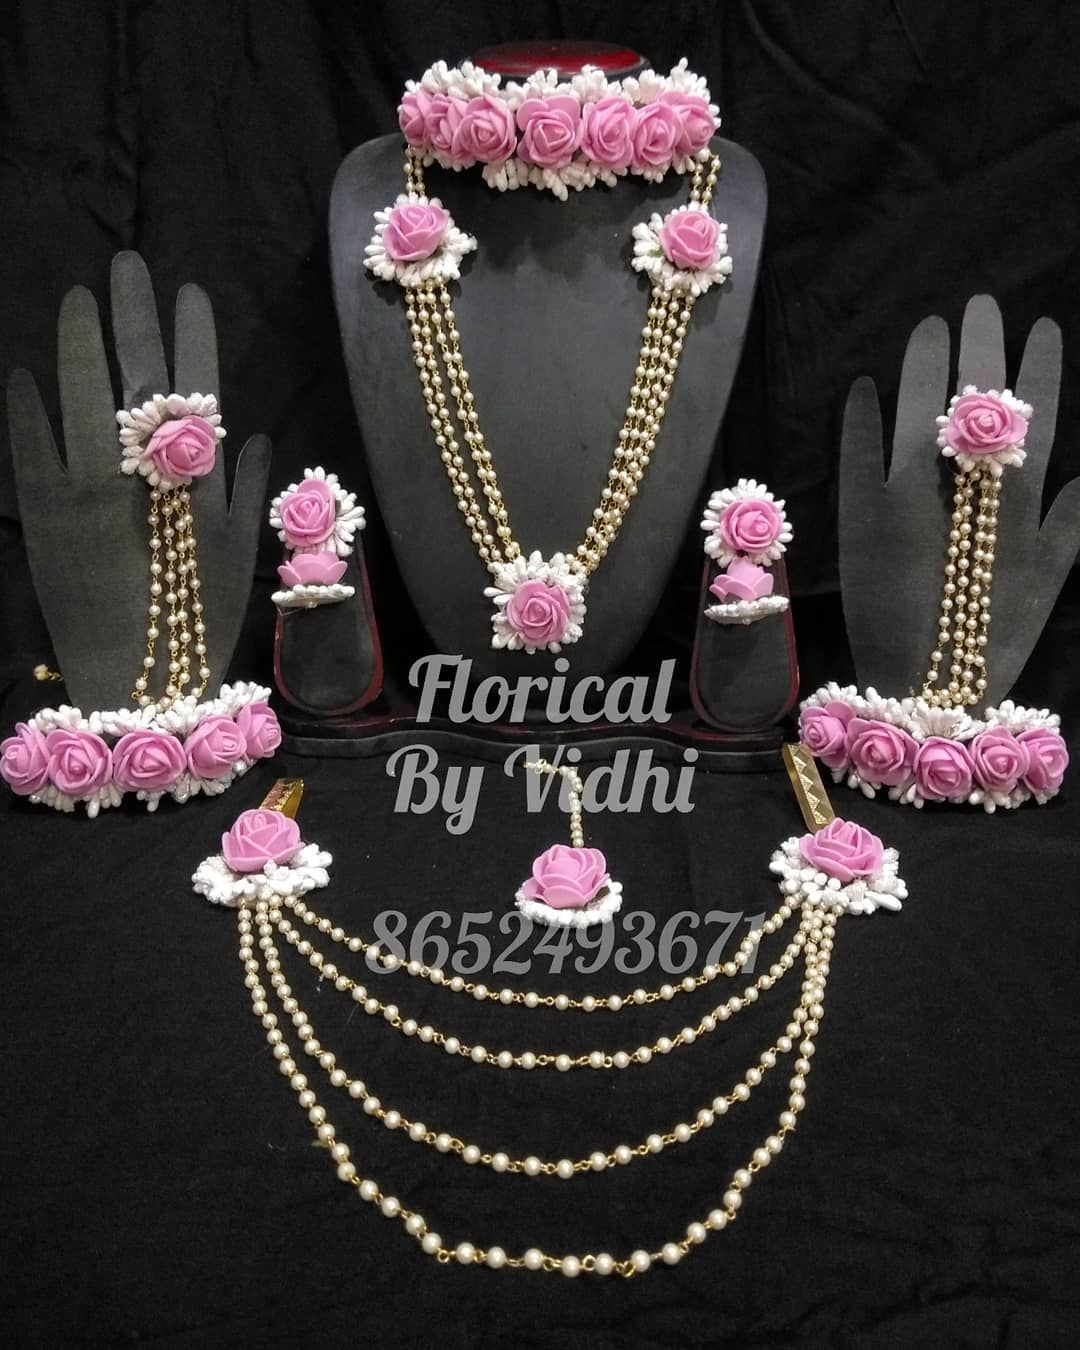 Artificial Flower Jewellery Customized For Our Mom To Be On Her Baby Shower Floricalbyvidhi Flowerjewellery Artificialflowers Artifici Boncuk Nakis Taki